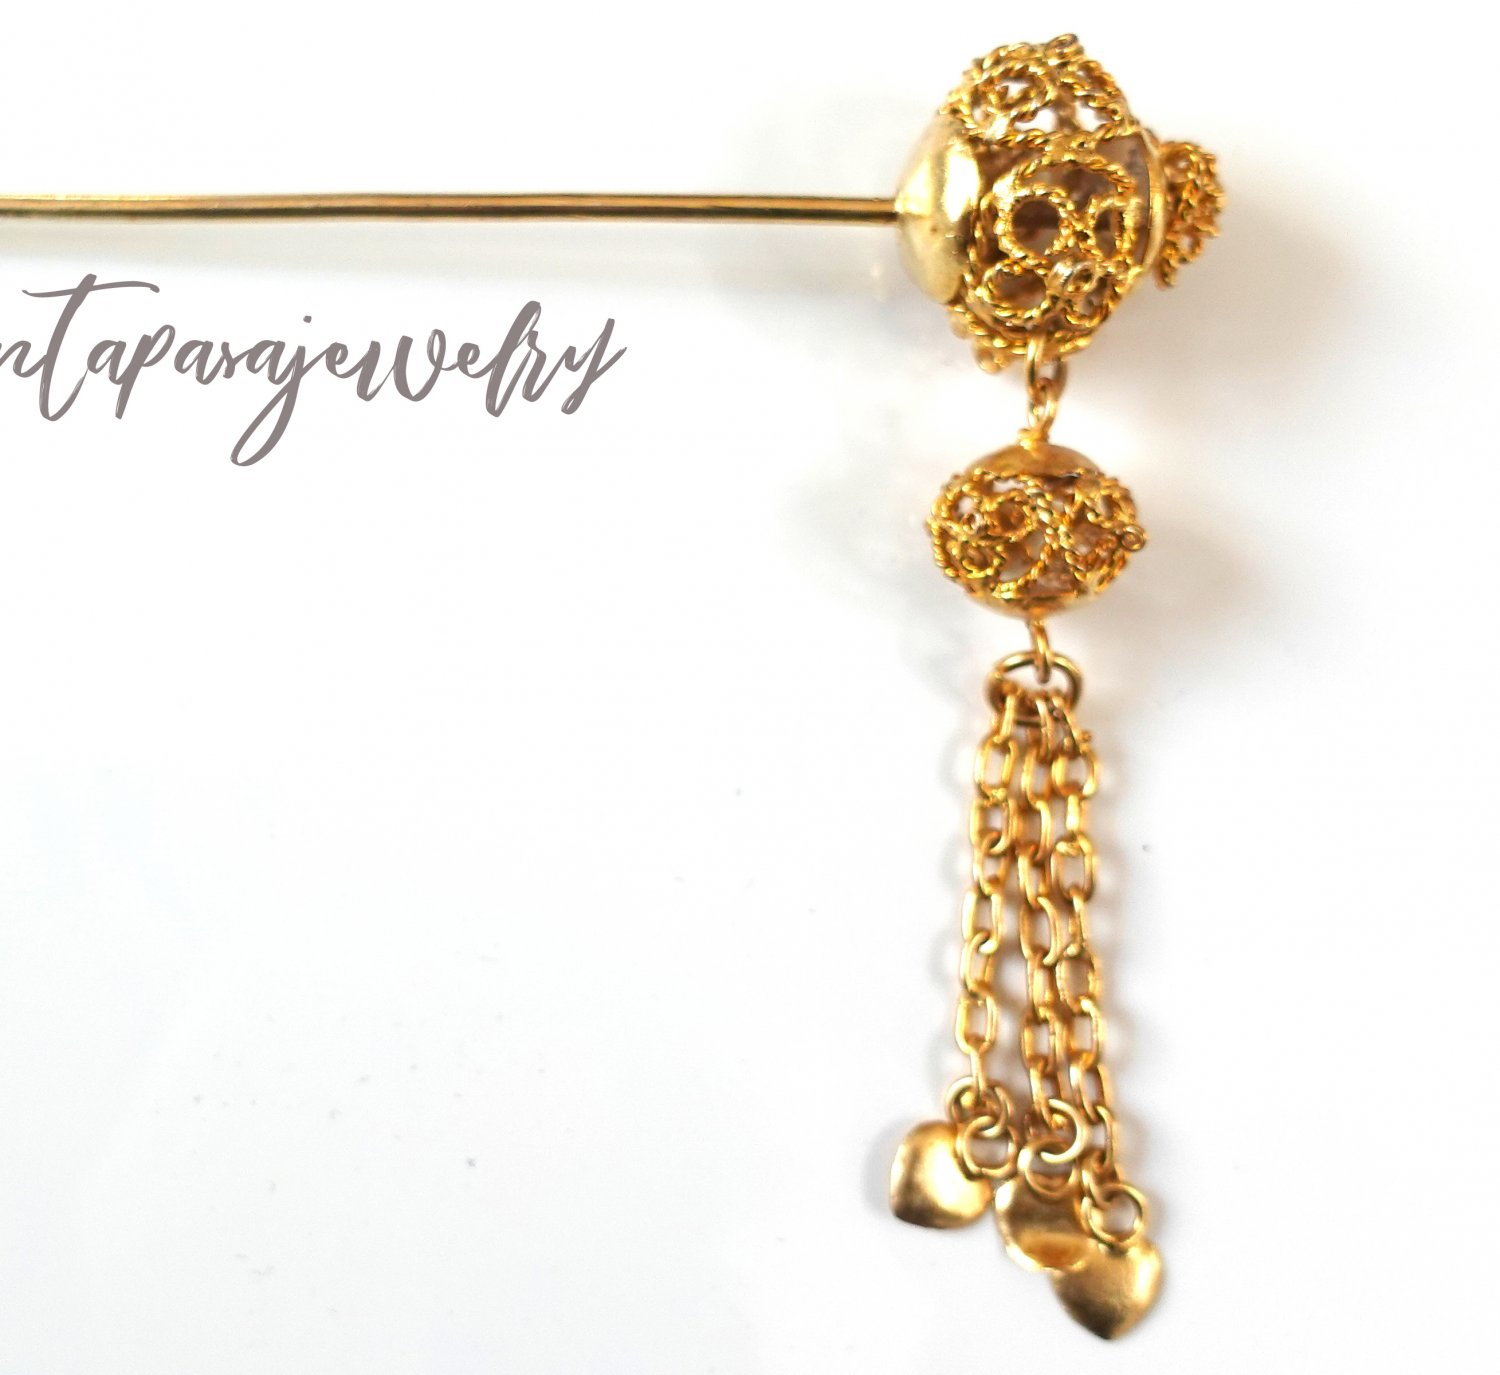 Khmer Cambodian Gold Hair Pin Accessories Wedding Engagement Handcrafted Dance or Wedding